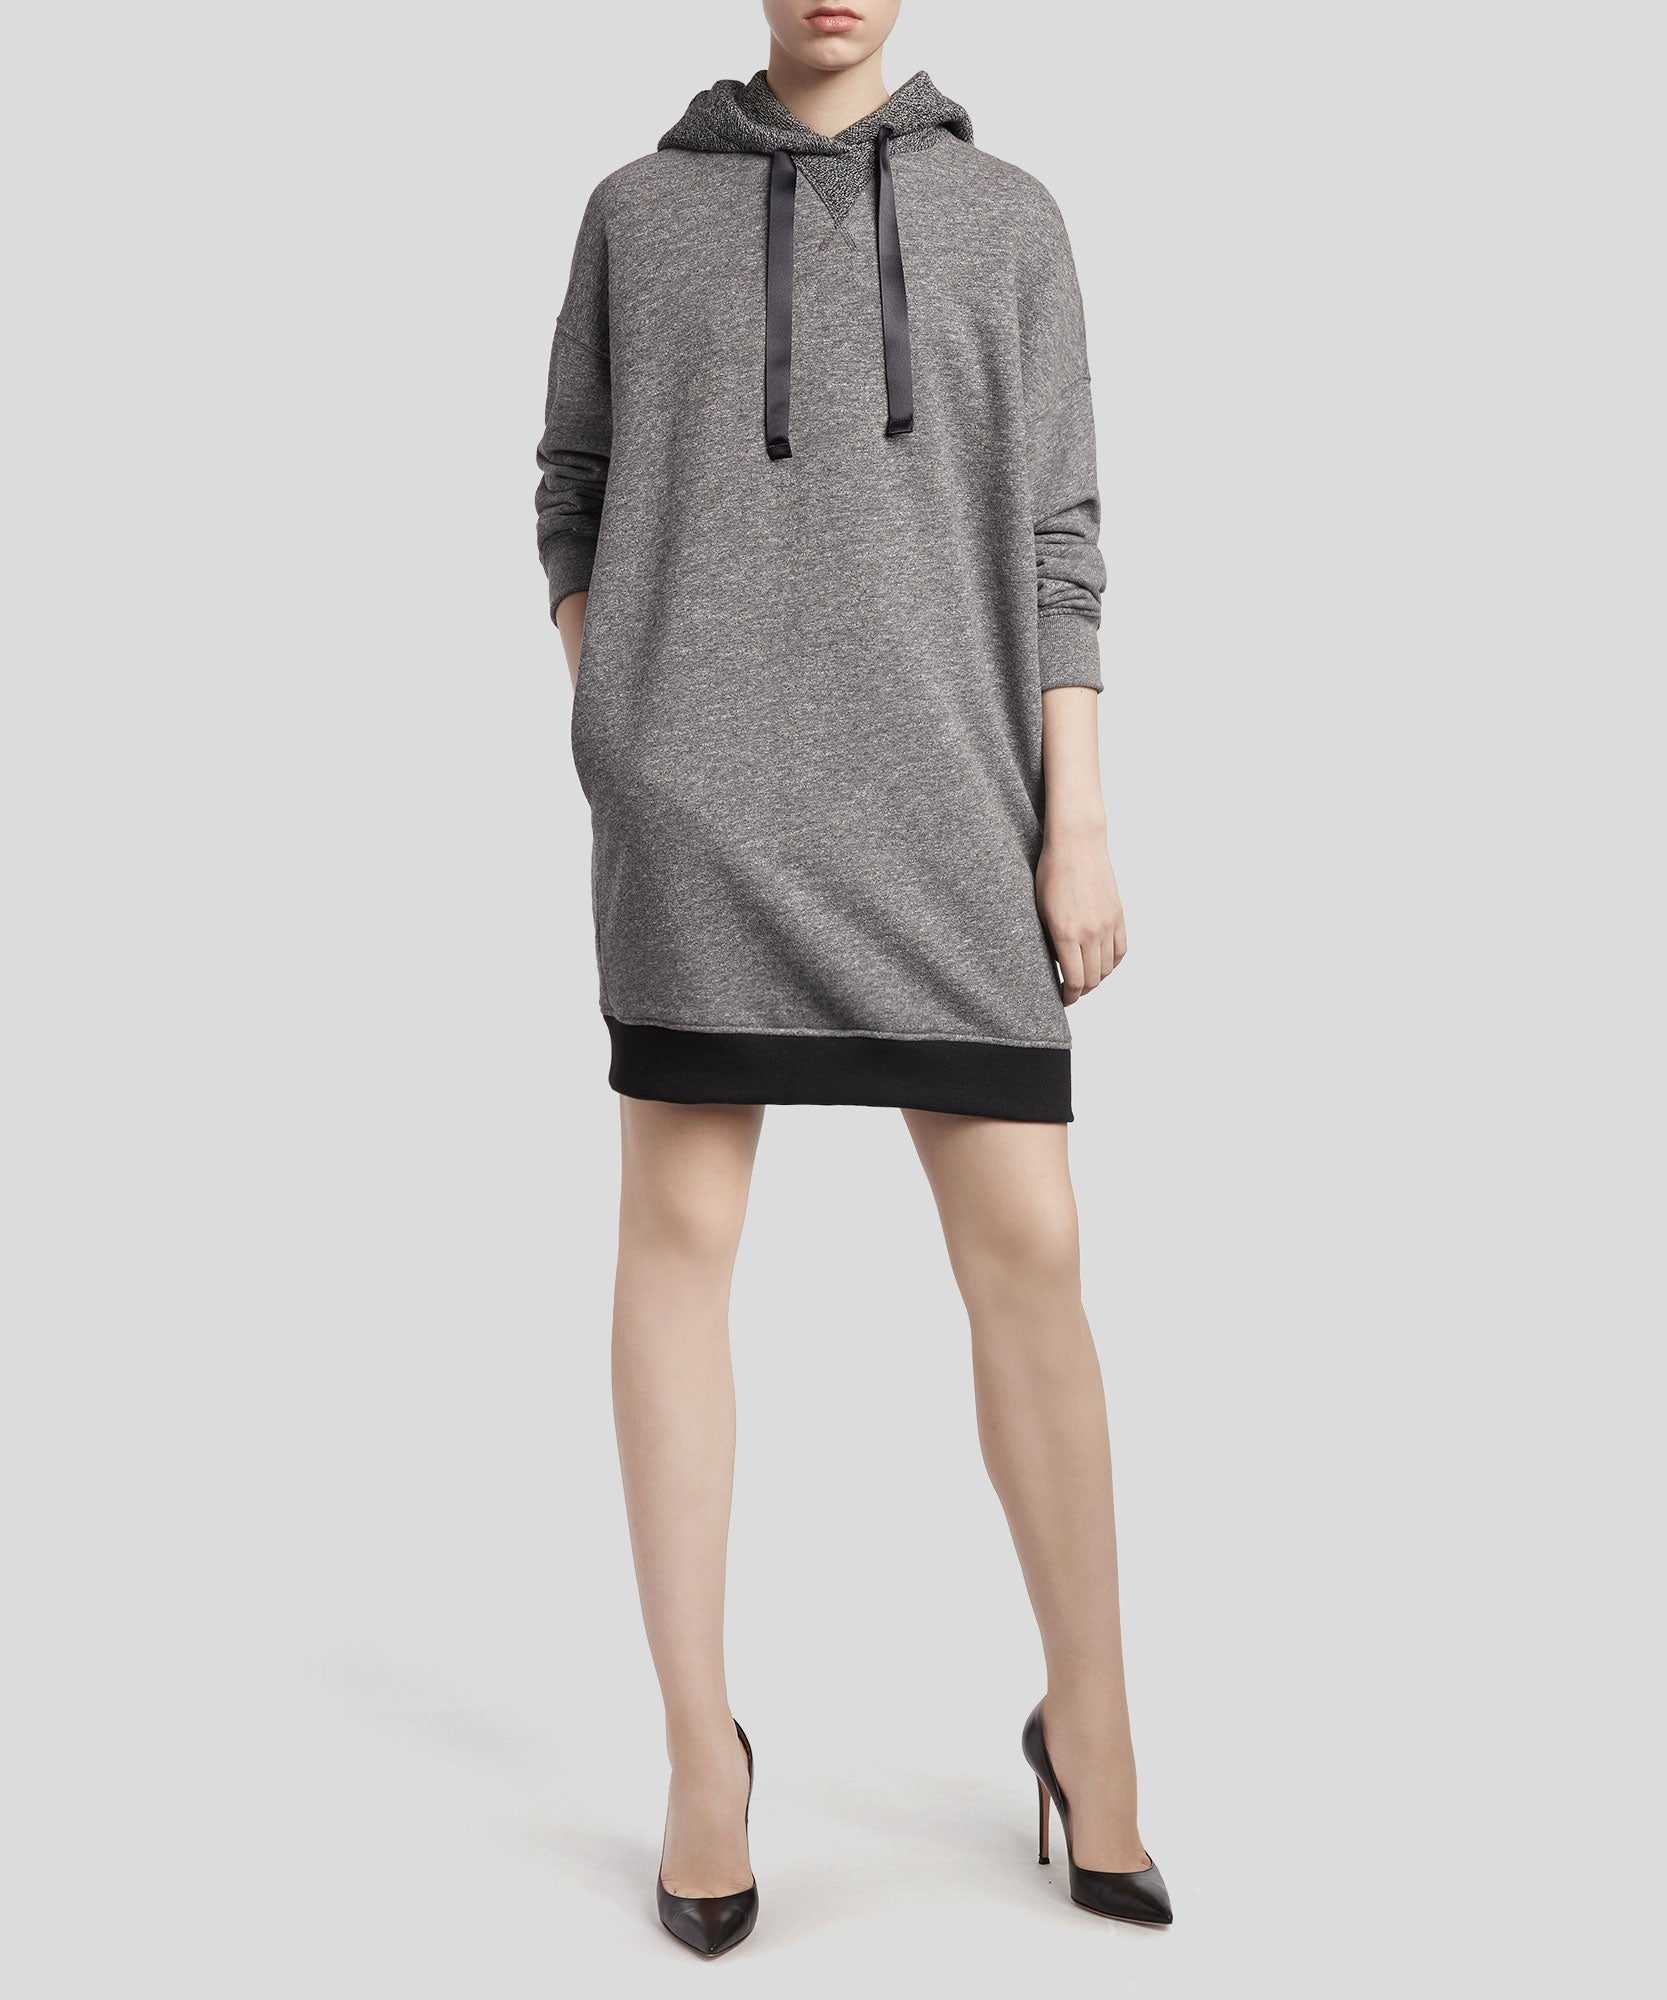 Heather Charcoal French Terry Hoodie Dress - Women's Casual Dress by ATM Anthony Thomas Melillo